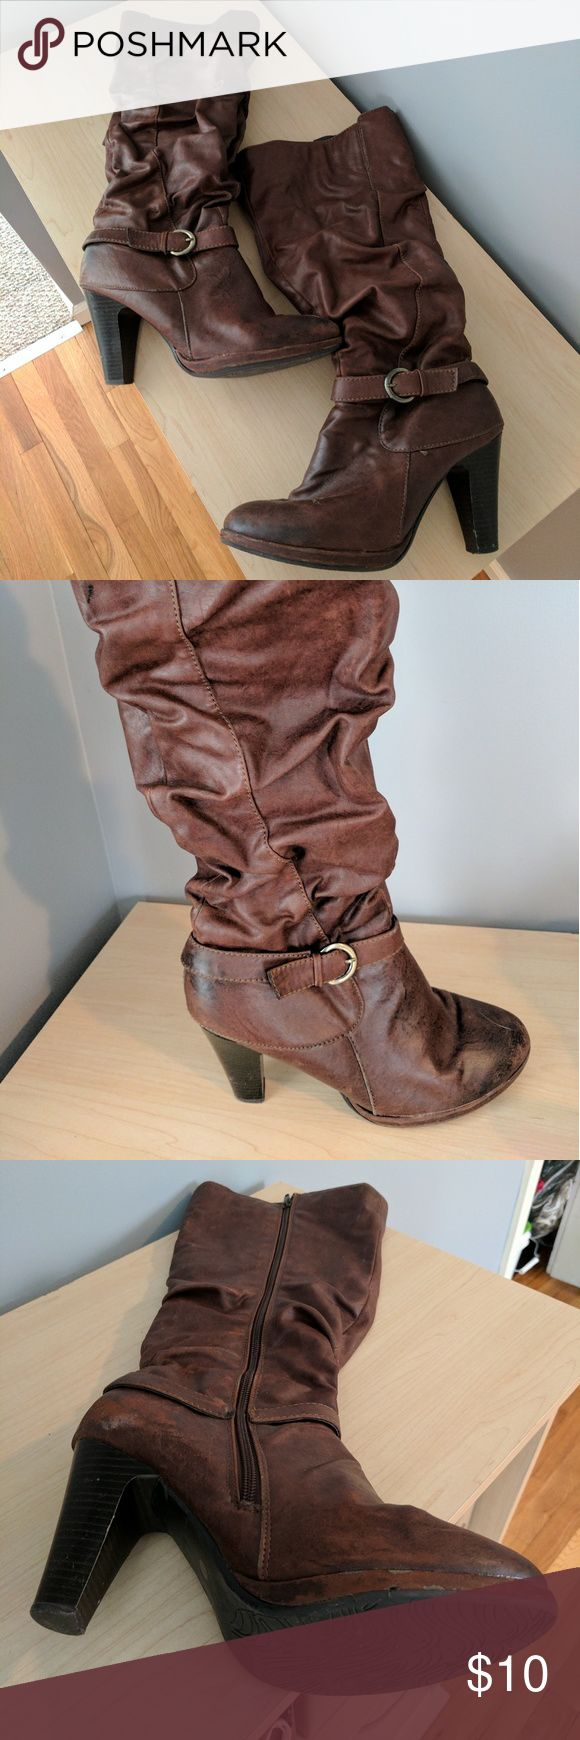 Brown below the knee boots Brown Heeled boots with buckle detail and inside zipper. Perfect with a pair of jeans Shoes Heeled Boots